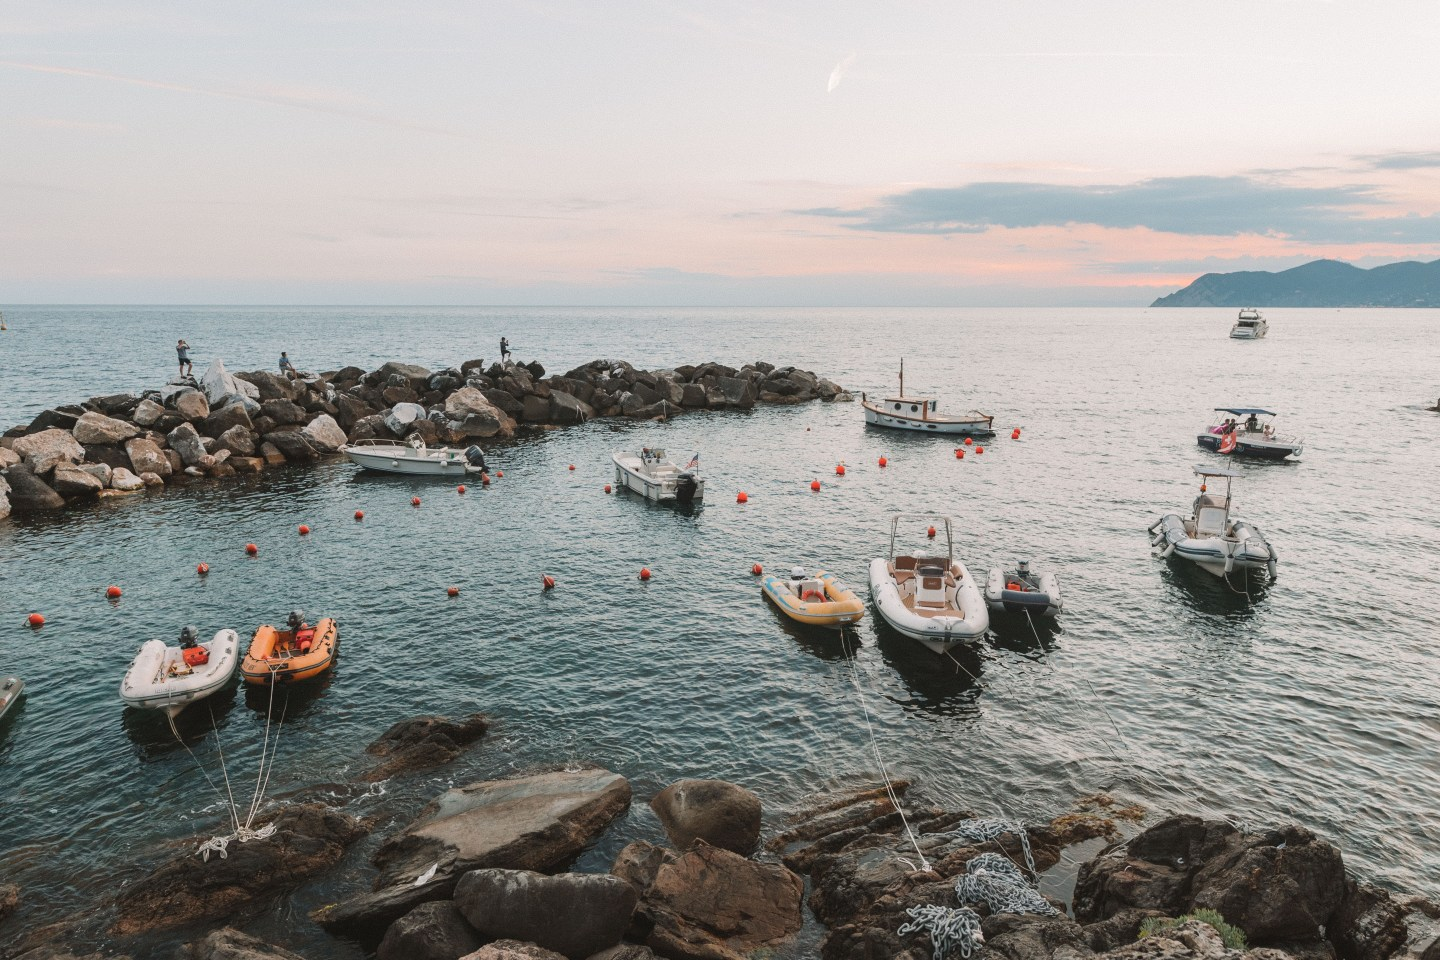 Boats in the harbour at sunset in Riomaggiore